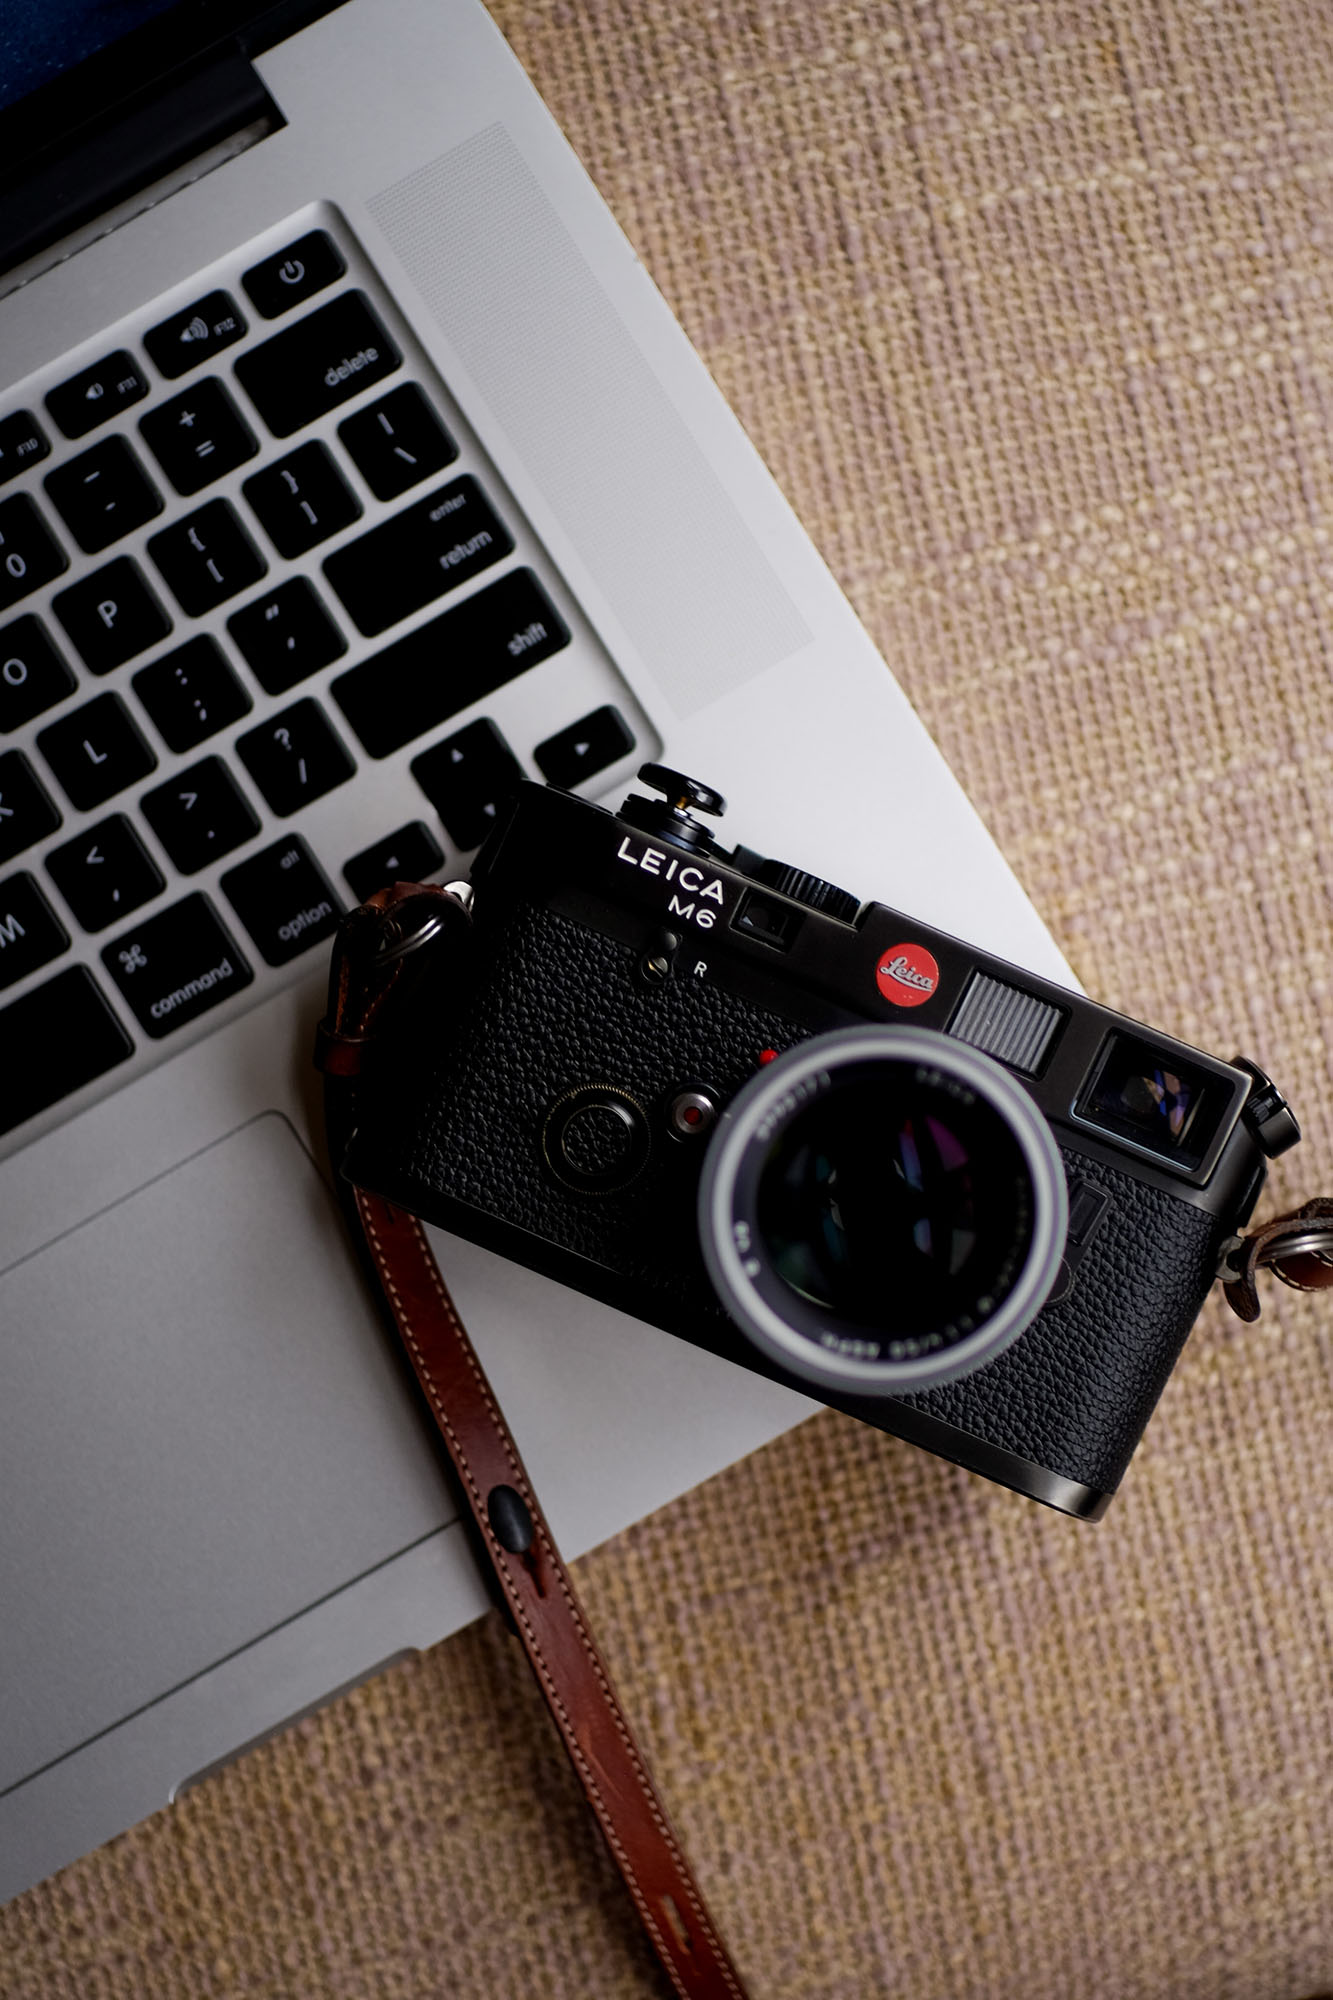 In Review: - The Leica M6 Classic